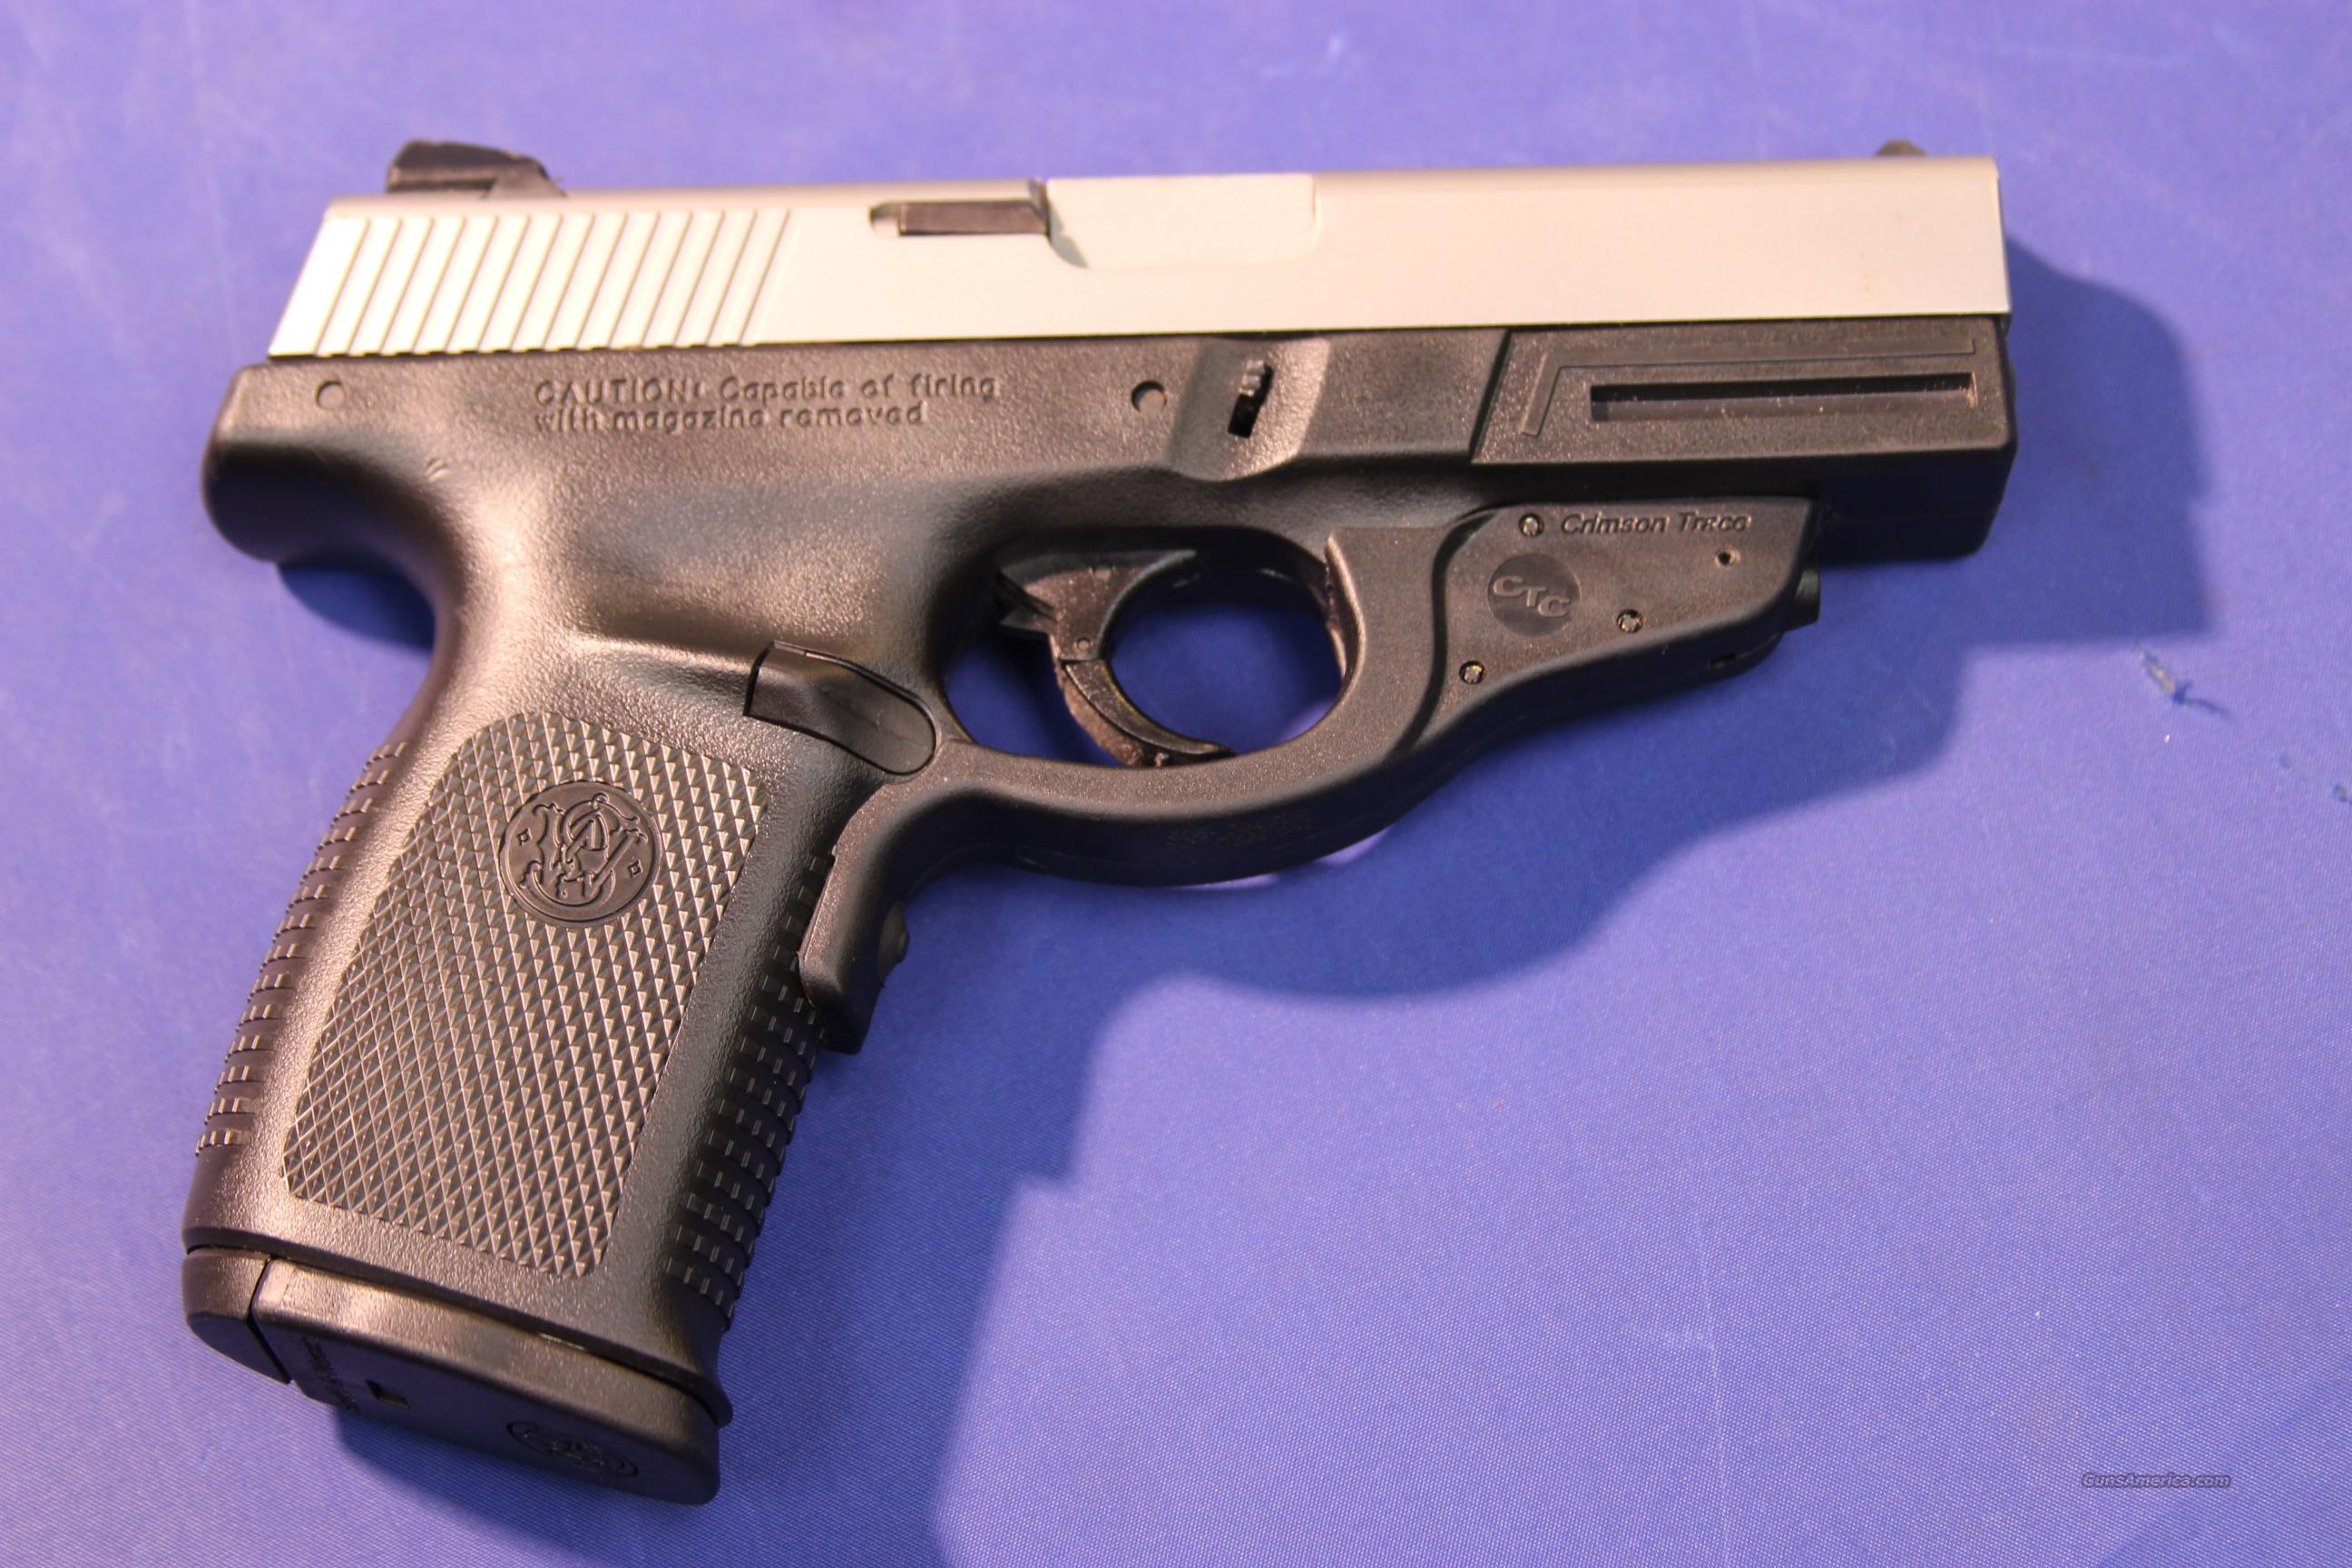 SMITH & WESSON SW40VE  Guns > Pistols > Smith & Wesson Pistols - Autos > Polymer Frame